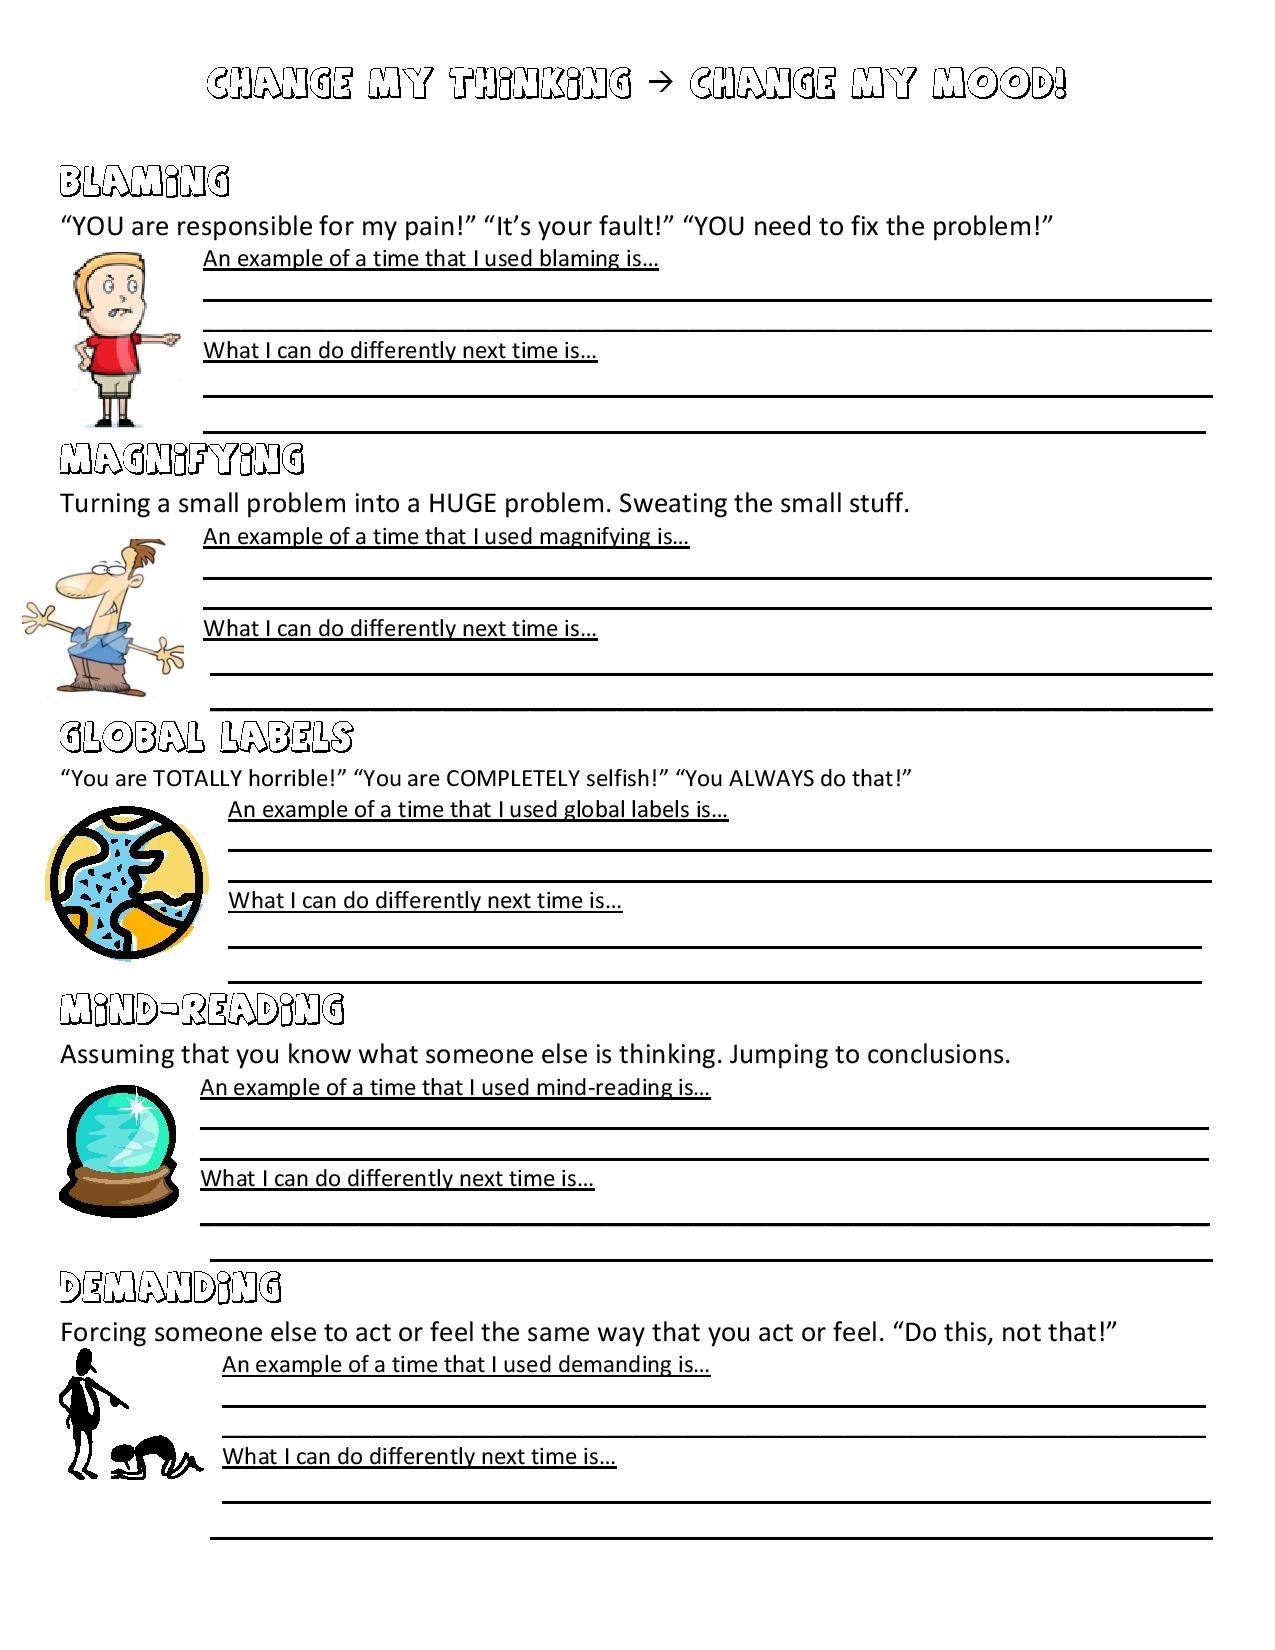 Anger Management Worksheet